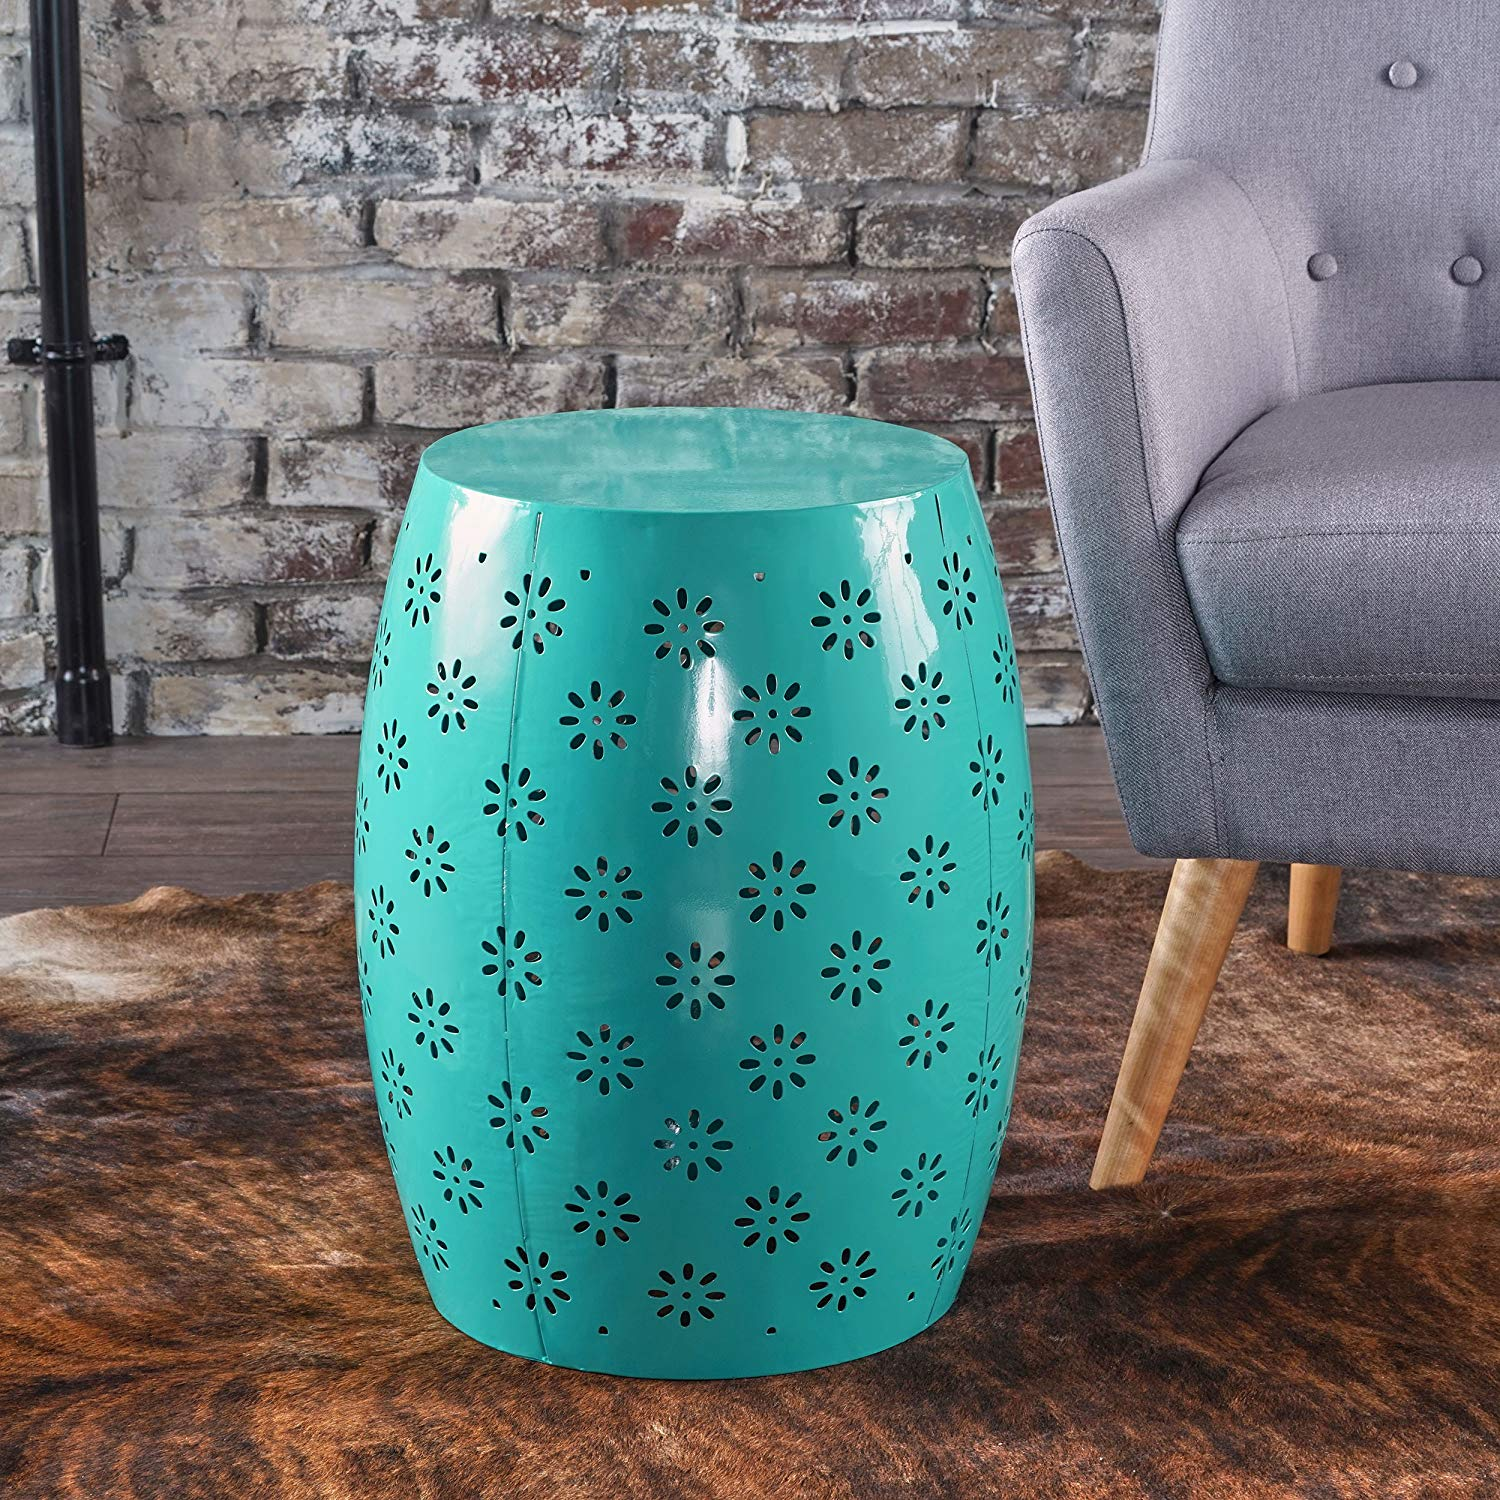 sulah side accent table lace cut design teal bfwahlul garden outdoor drop leaf dining room laminate paint turquoise sofa west elm arc lamp cherry kitchen and chairs rustic gray